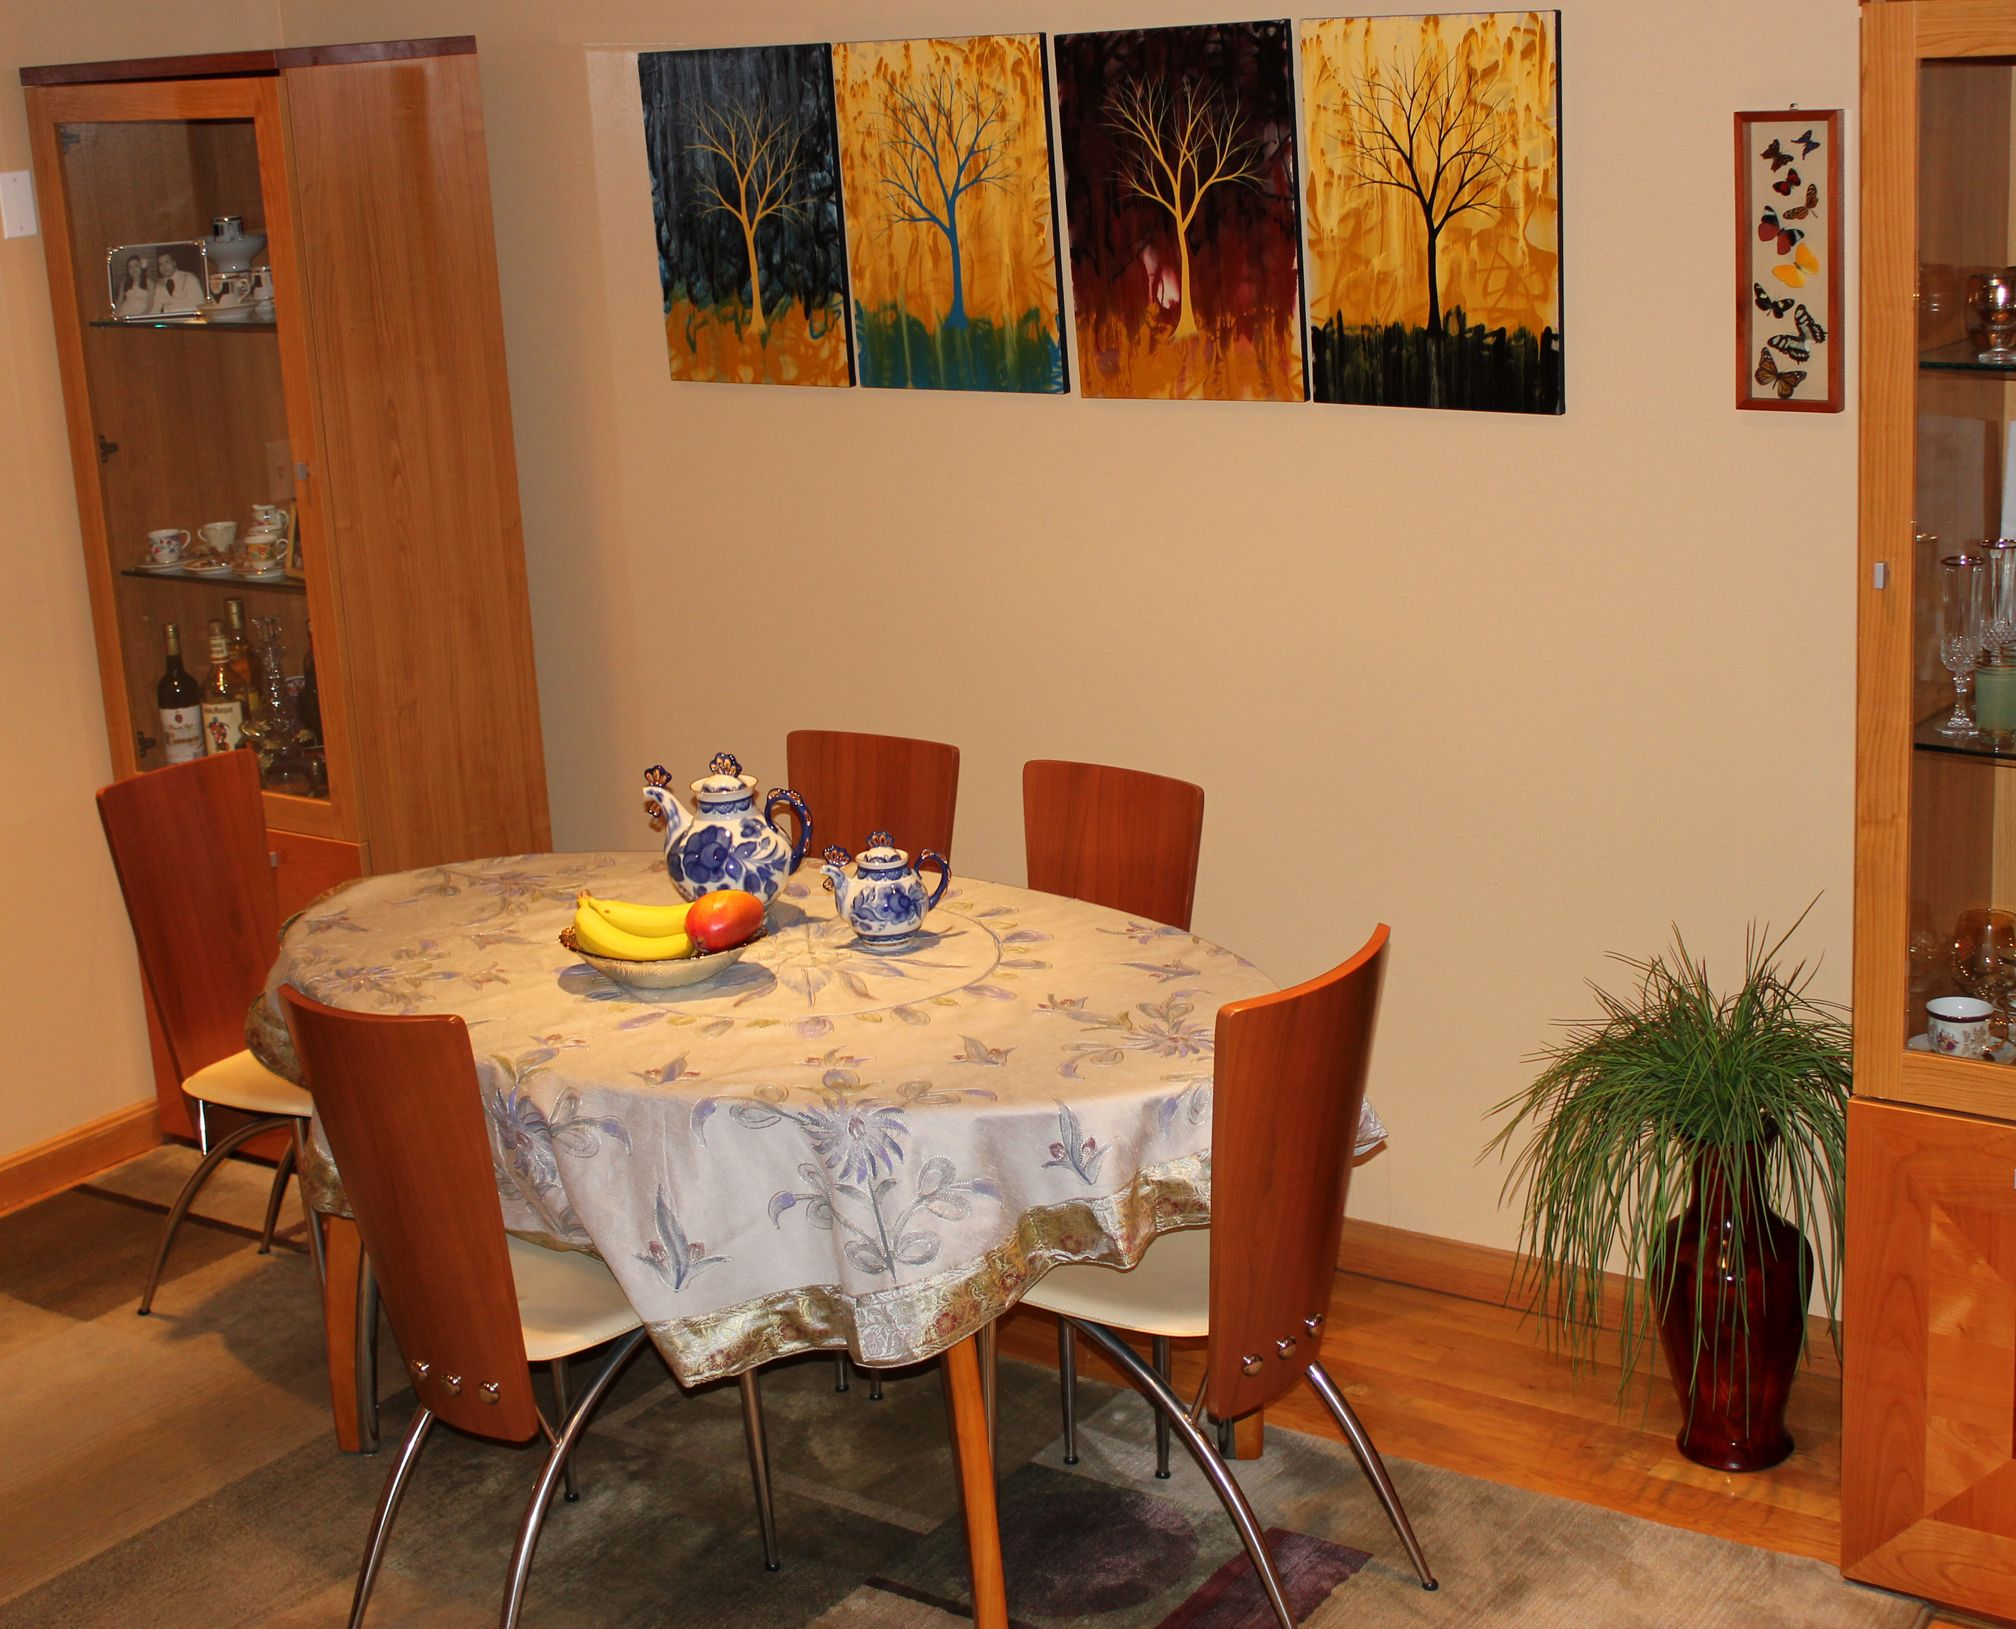 Contemporary dining area decorated with a hand painted for Wall designs for dining area